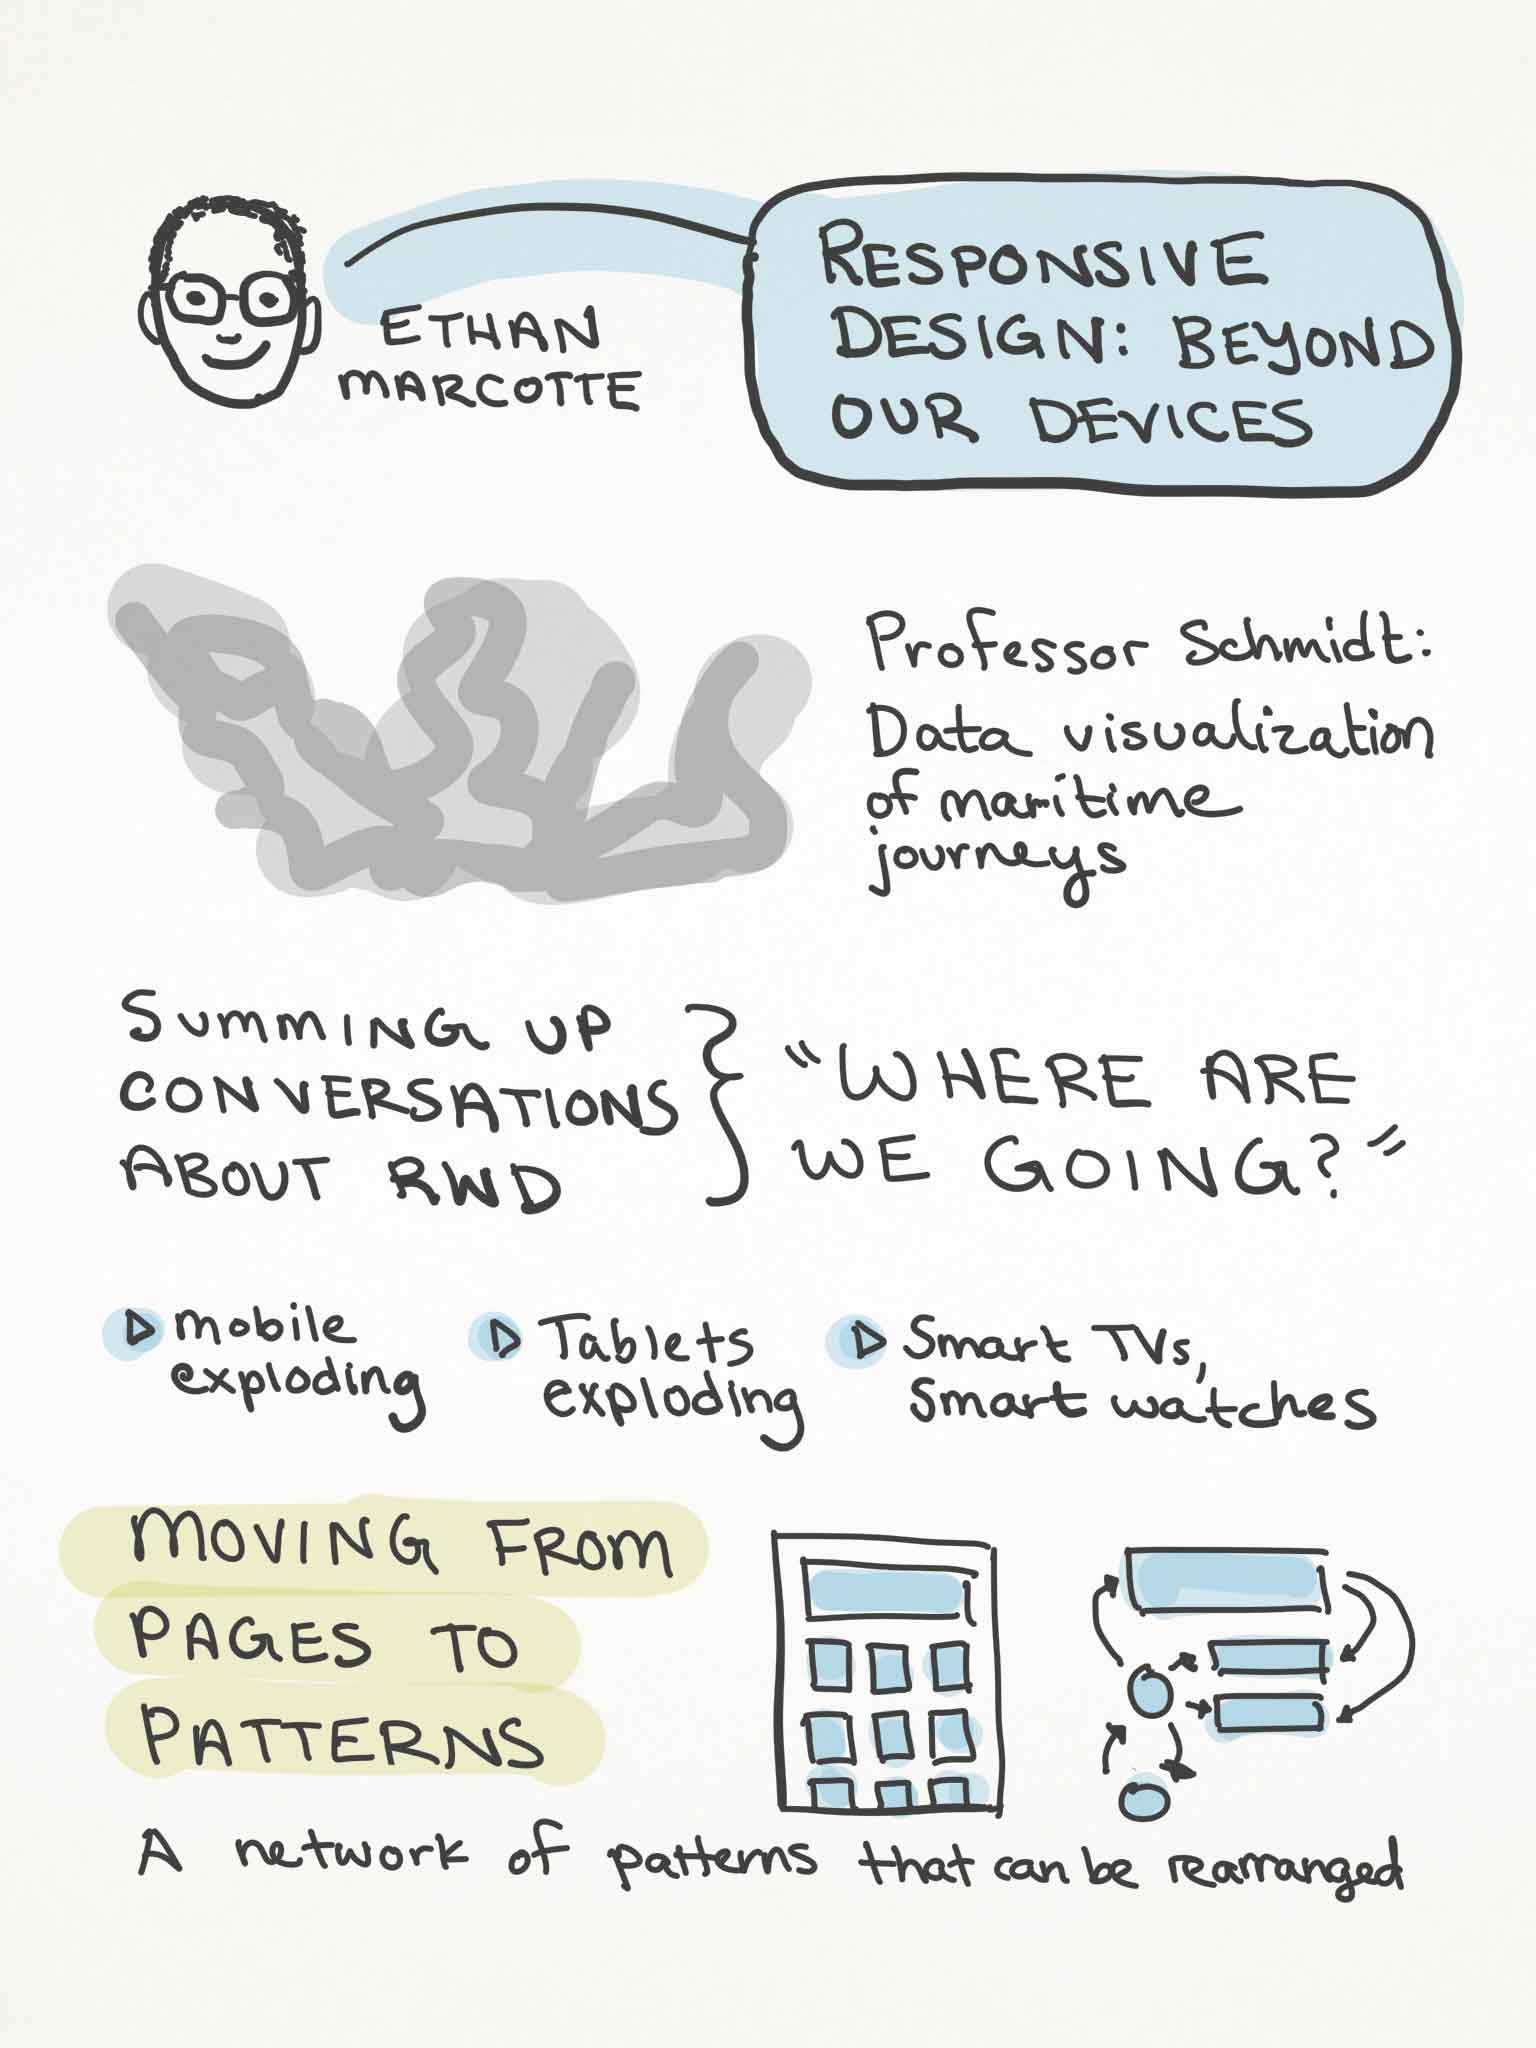 Sketchnotes page 1 from Ethan Marcotte's talk